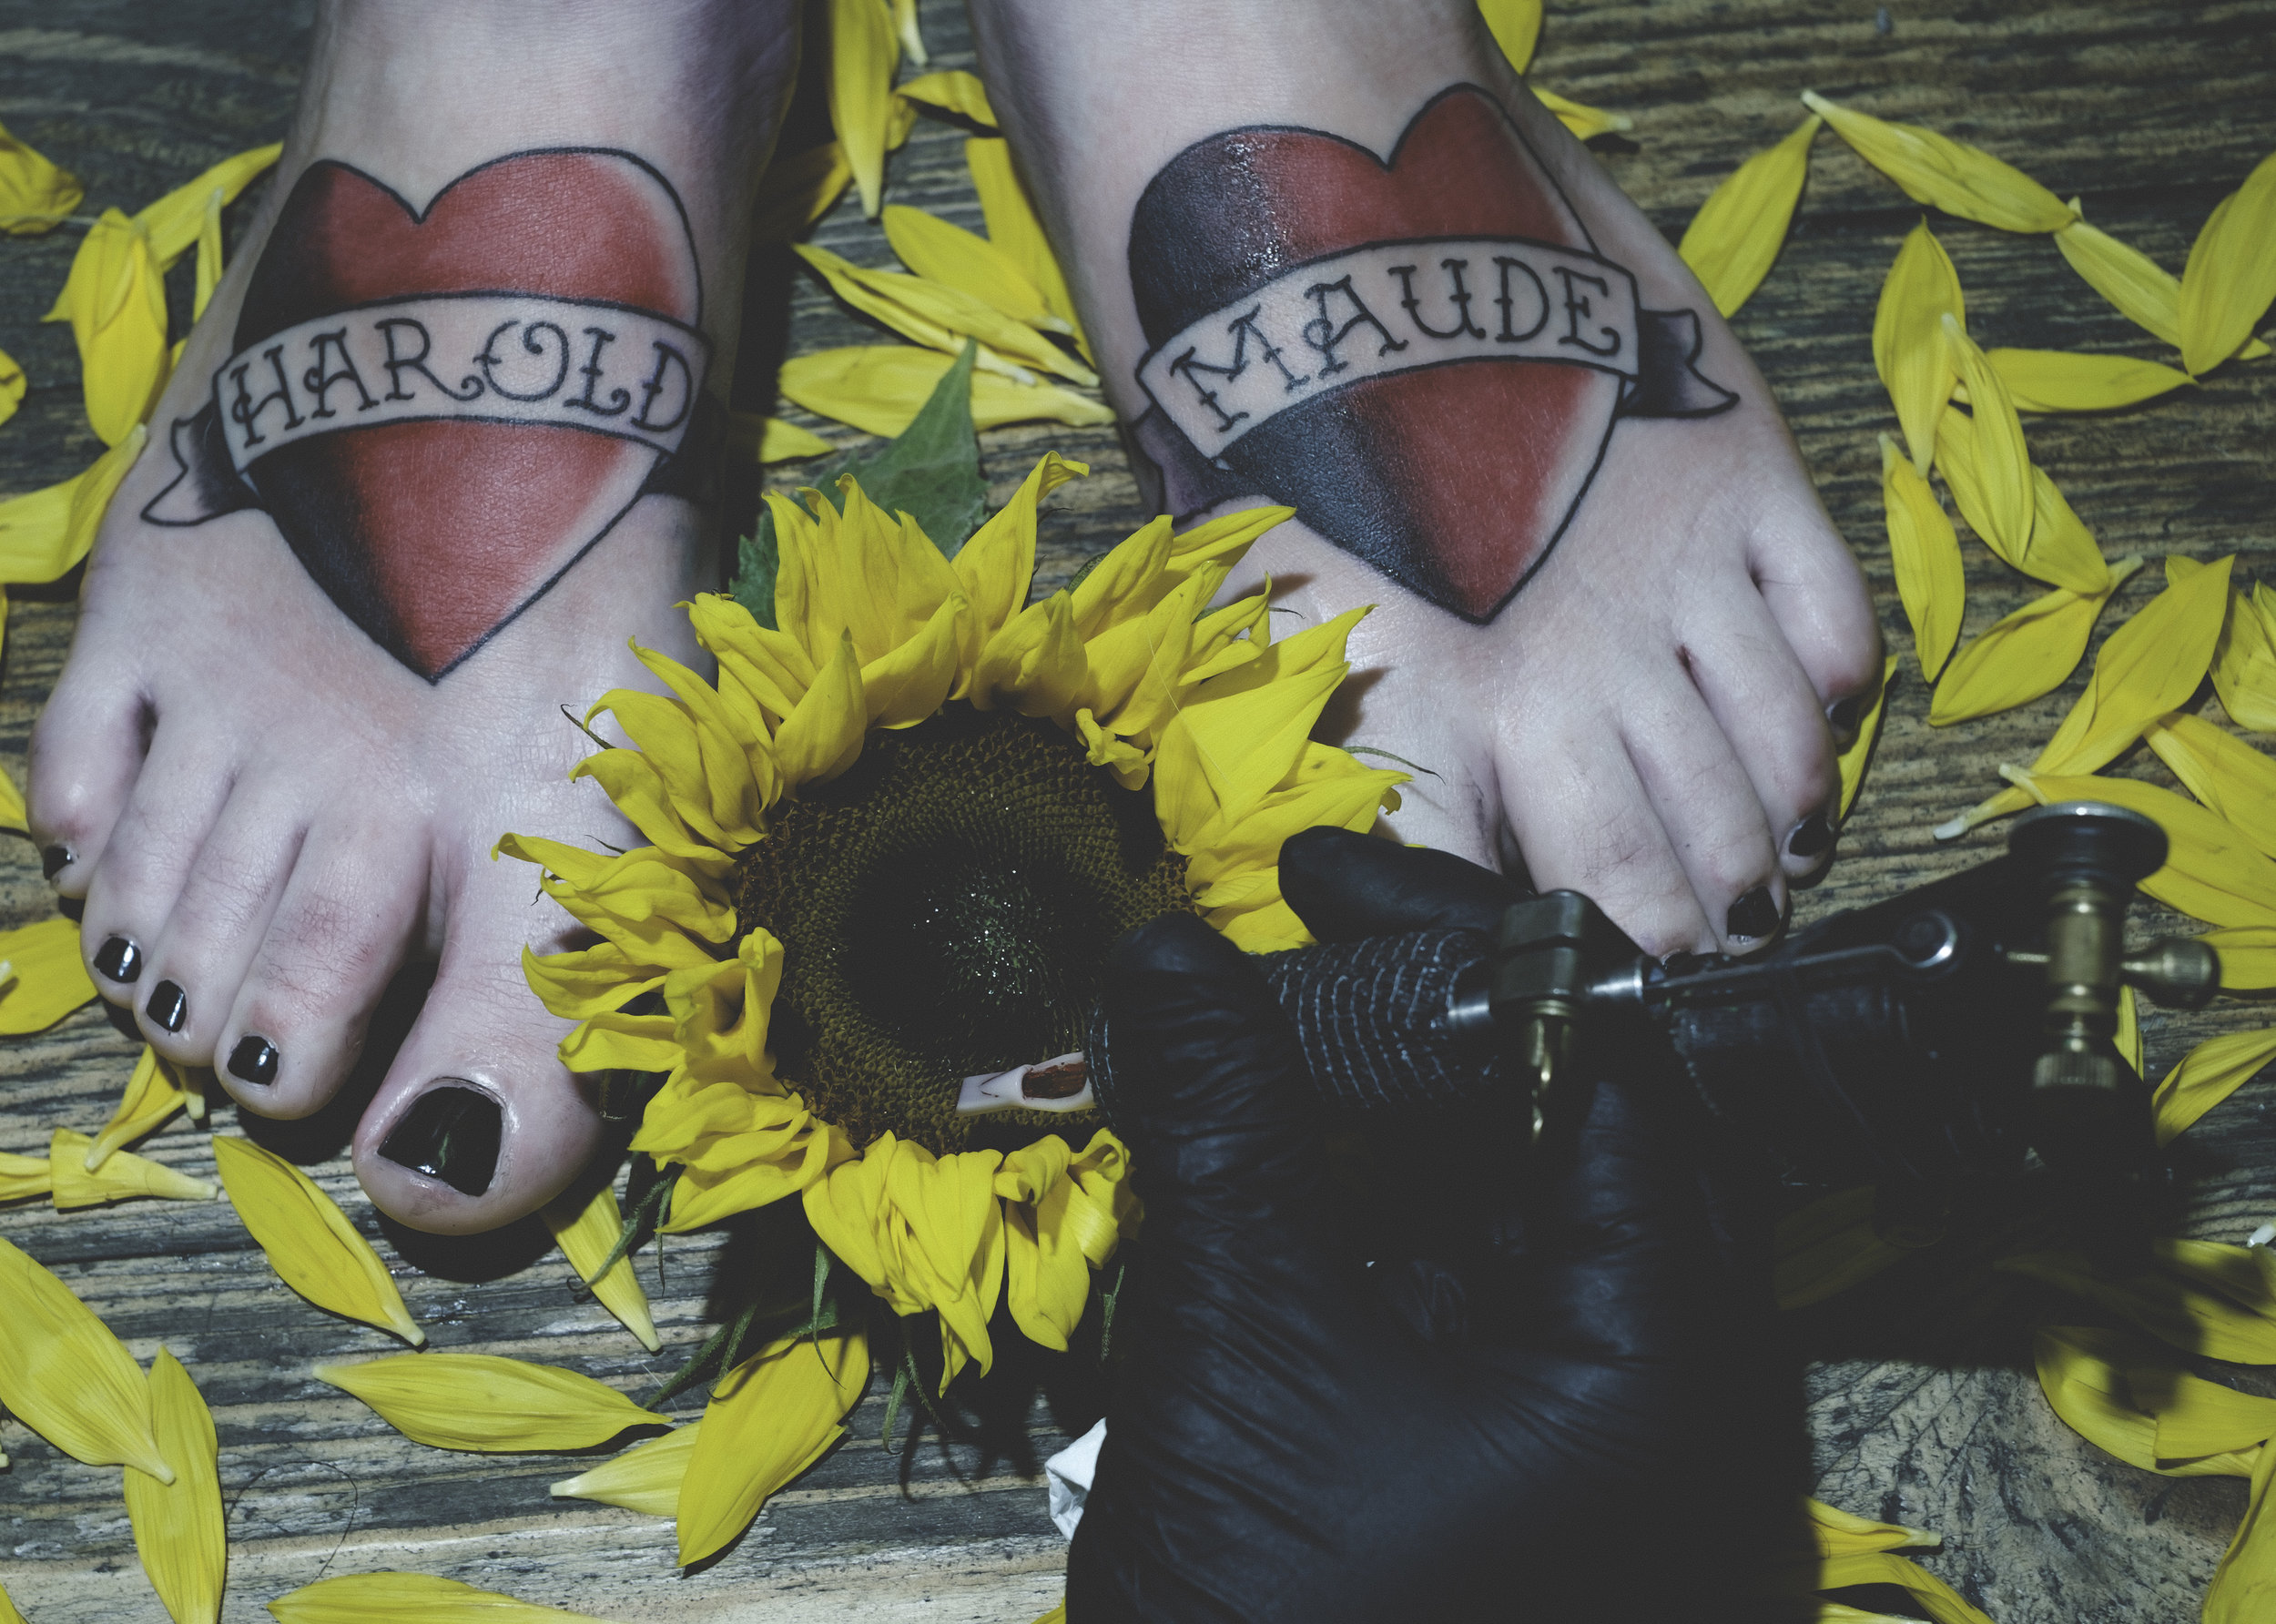 Alex Simpson tattooing Lucy's feet, captured by Adam J. Pegg.